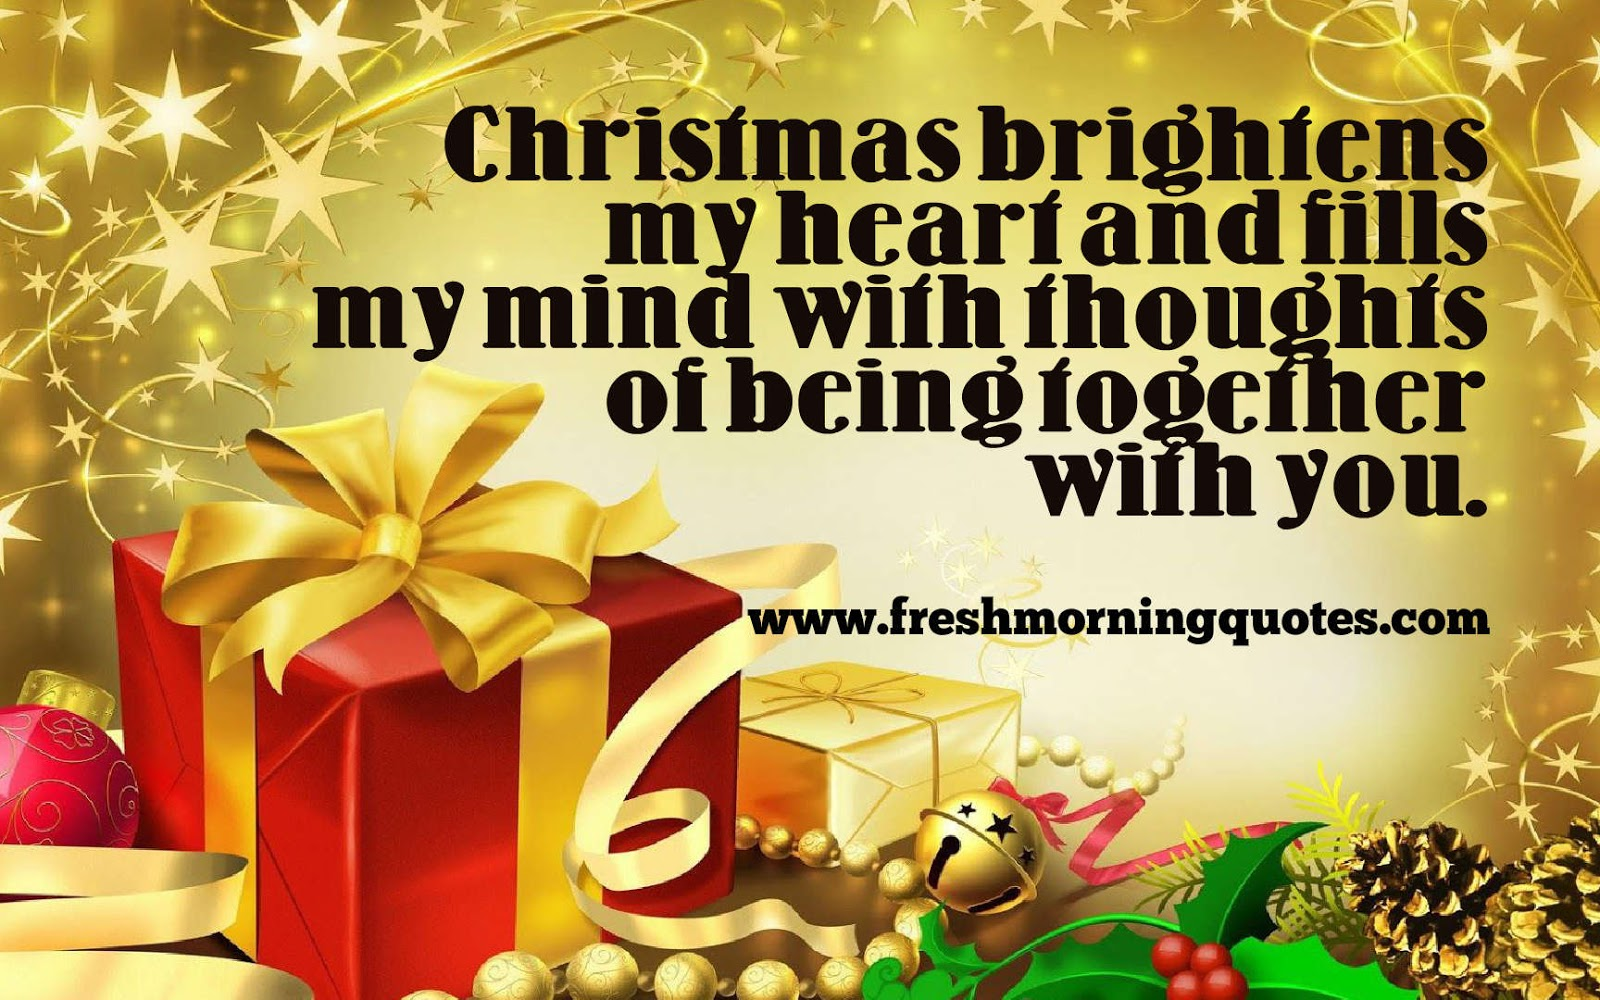 60 Heart Touching Christmas Love Messages Freshmorningquotes